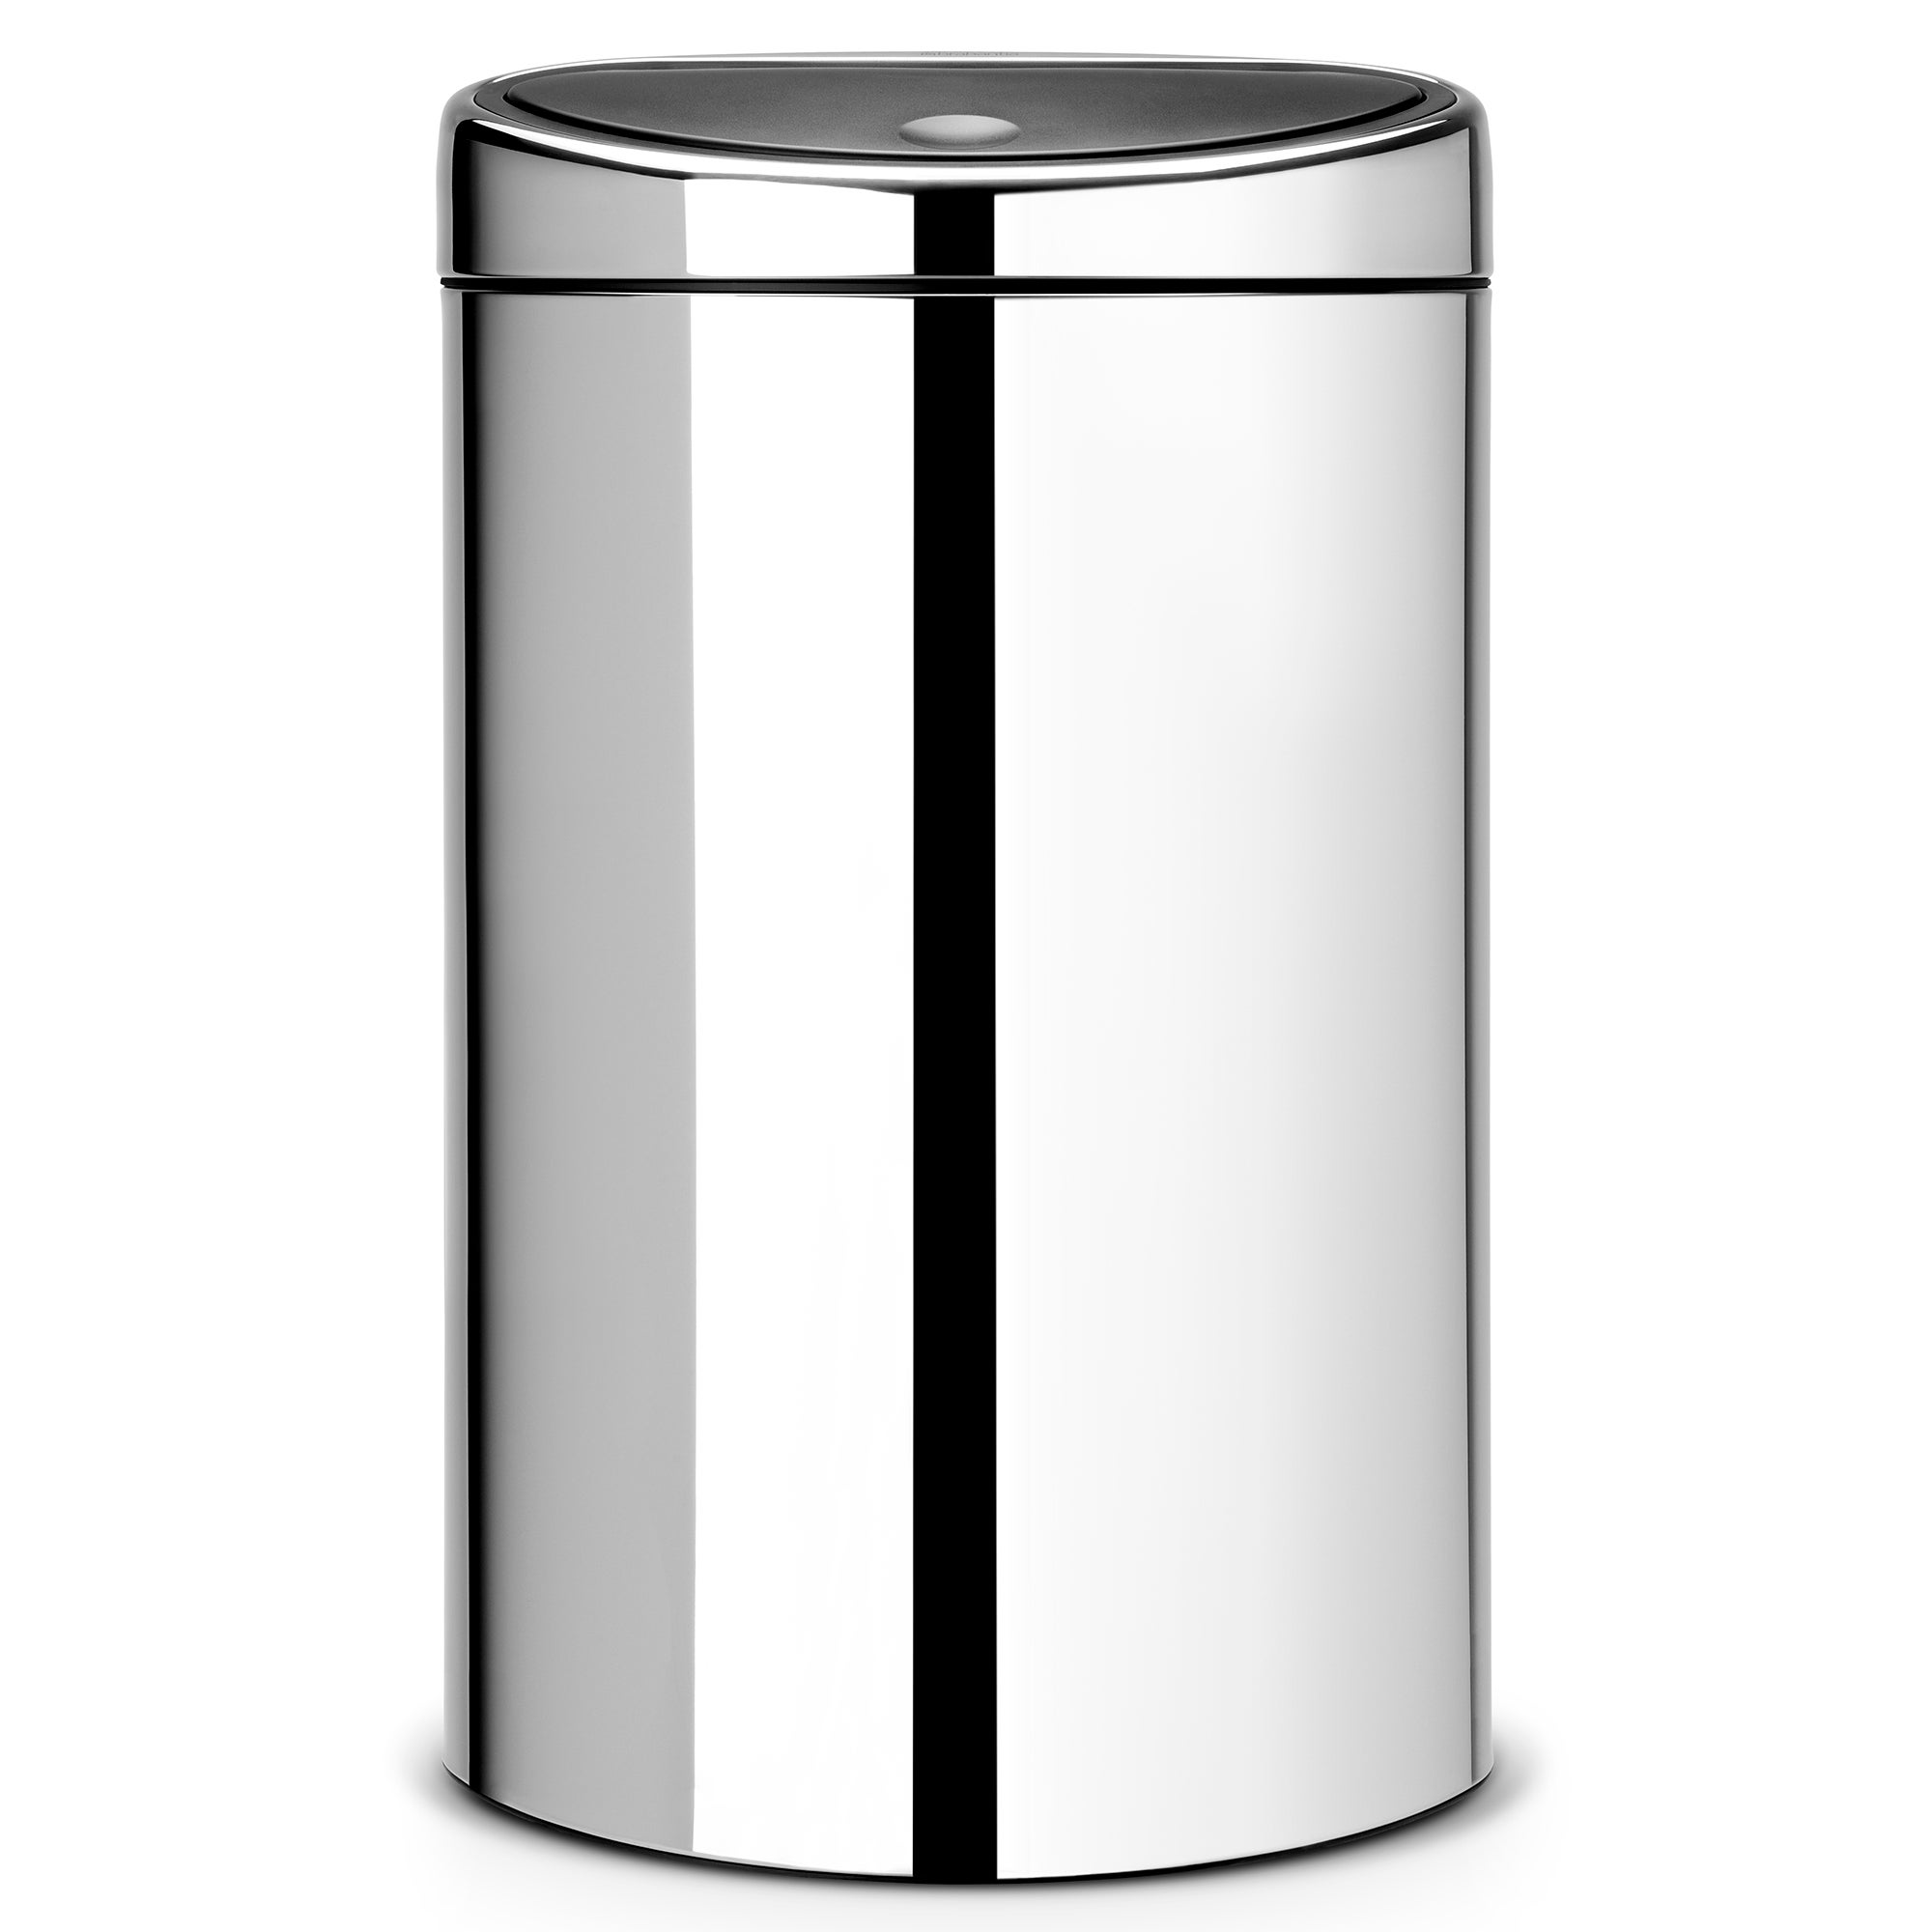 Brabantia Brilliant Steel 40 Litre Touch Bin